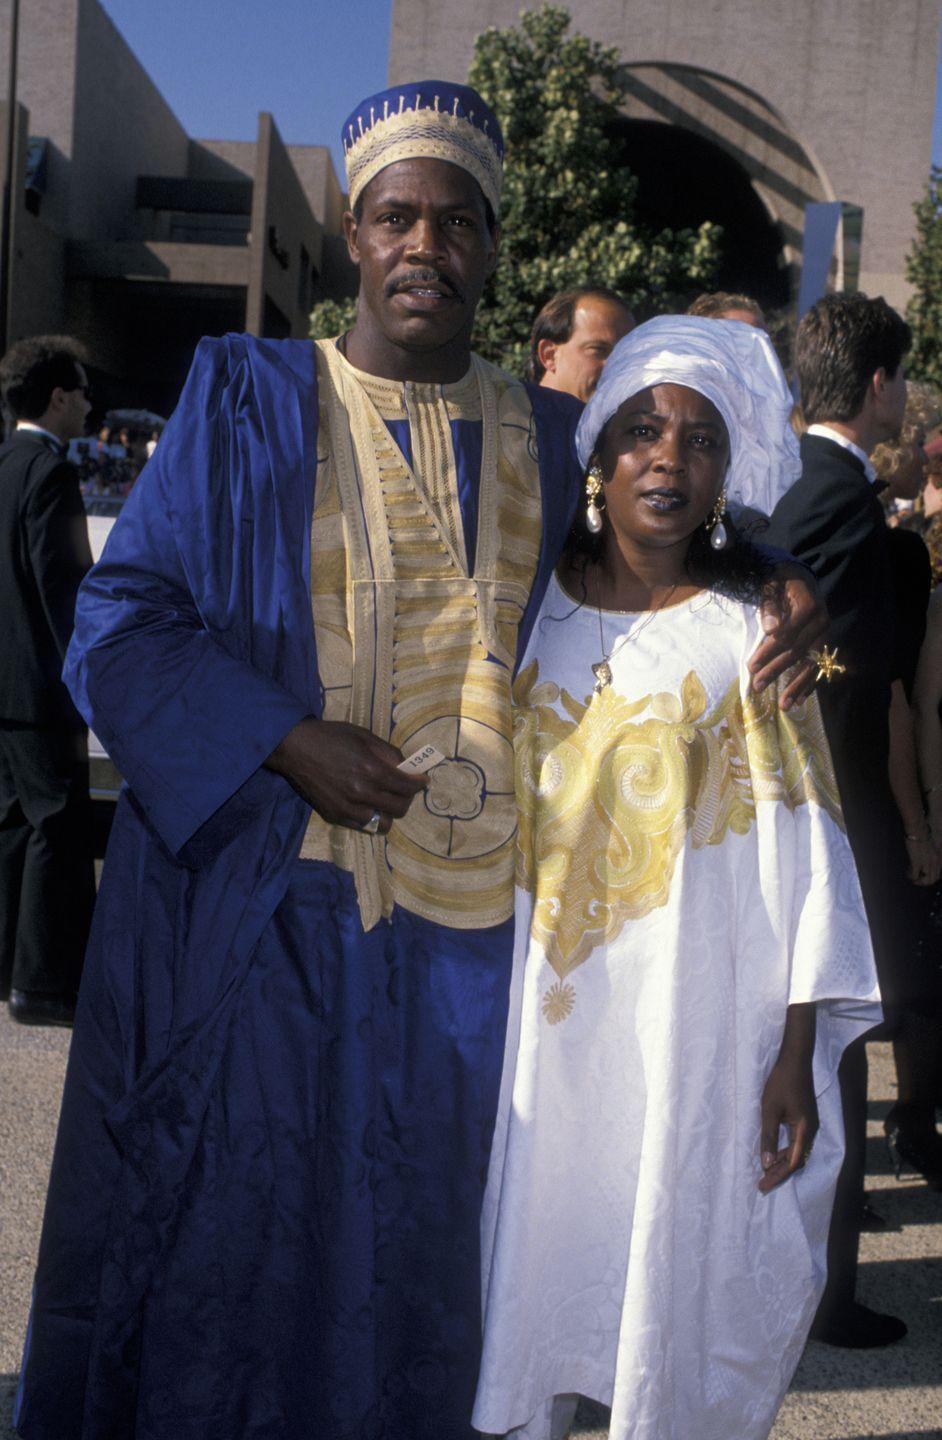 <p>Wearing traditional clothing, Danny Glover and his wife brought surprising and stunning looks to the red carpet.</p>